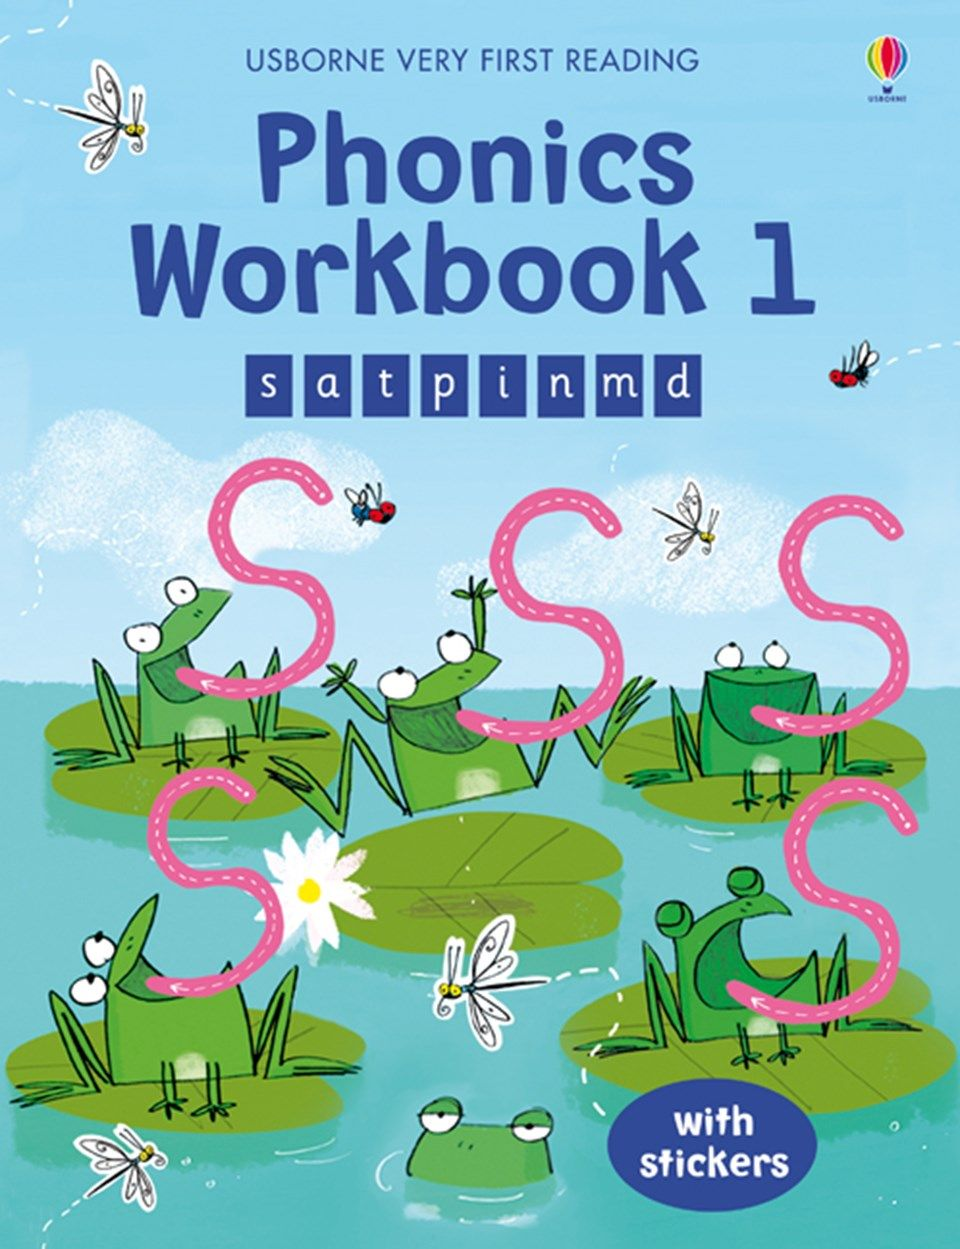 Workbooks jolly phonics workbook 1 free download : Phonics workbook level 1 | Phonics and learning to read ...